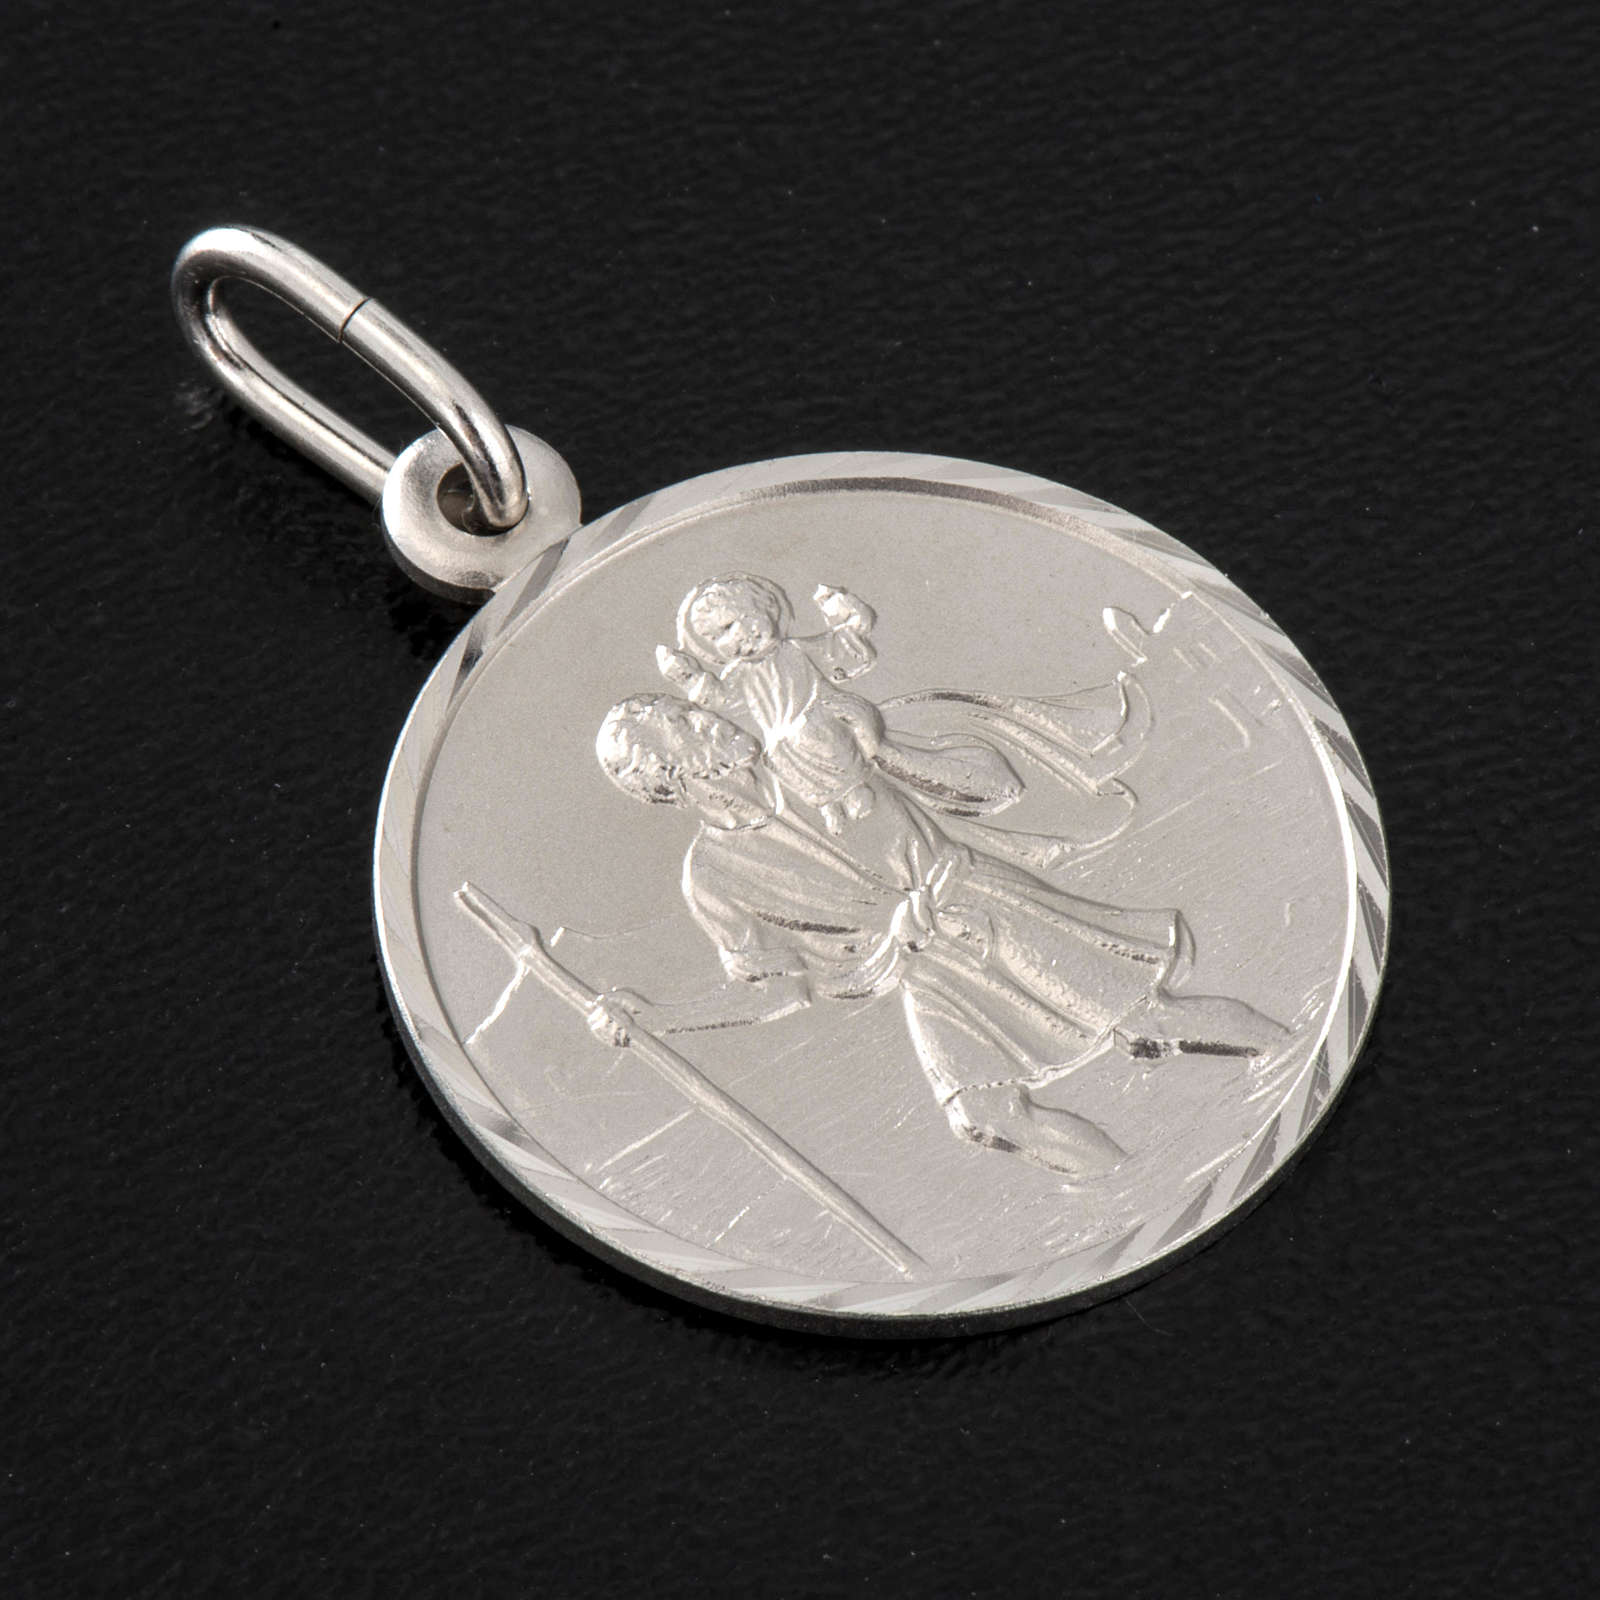 Saint Christopher medal in silver 925, 2 cm 4